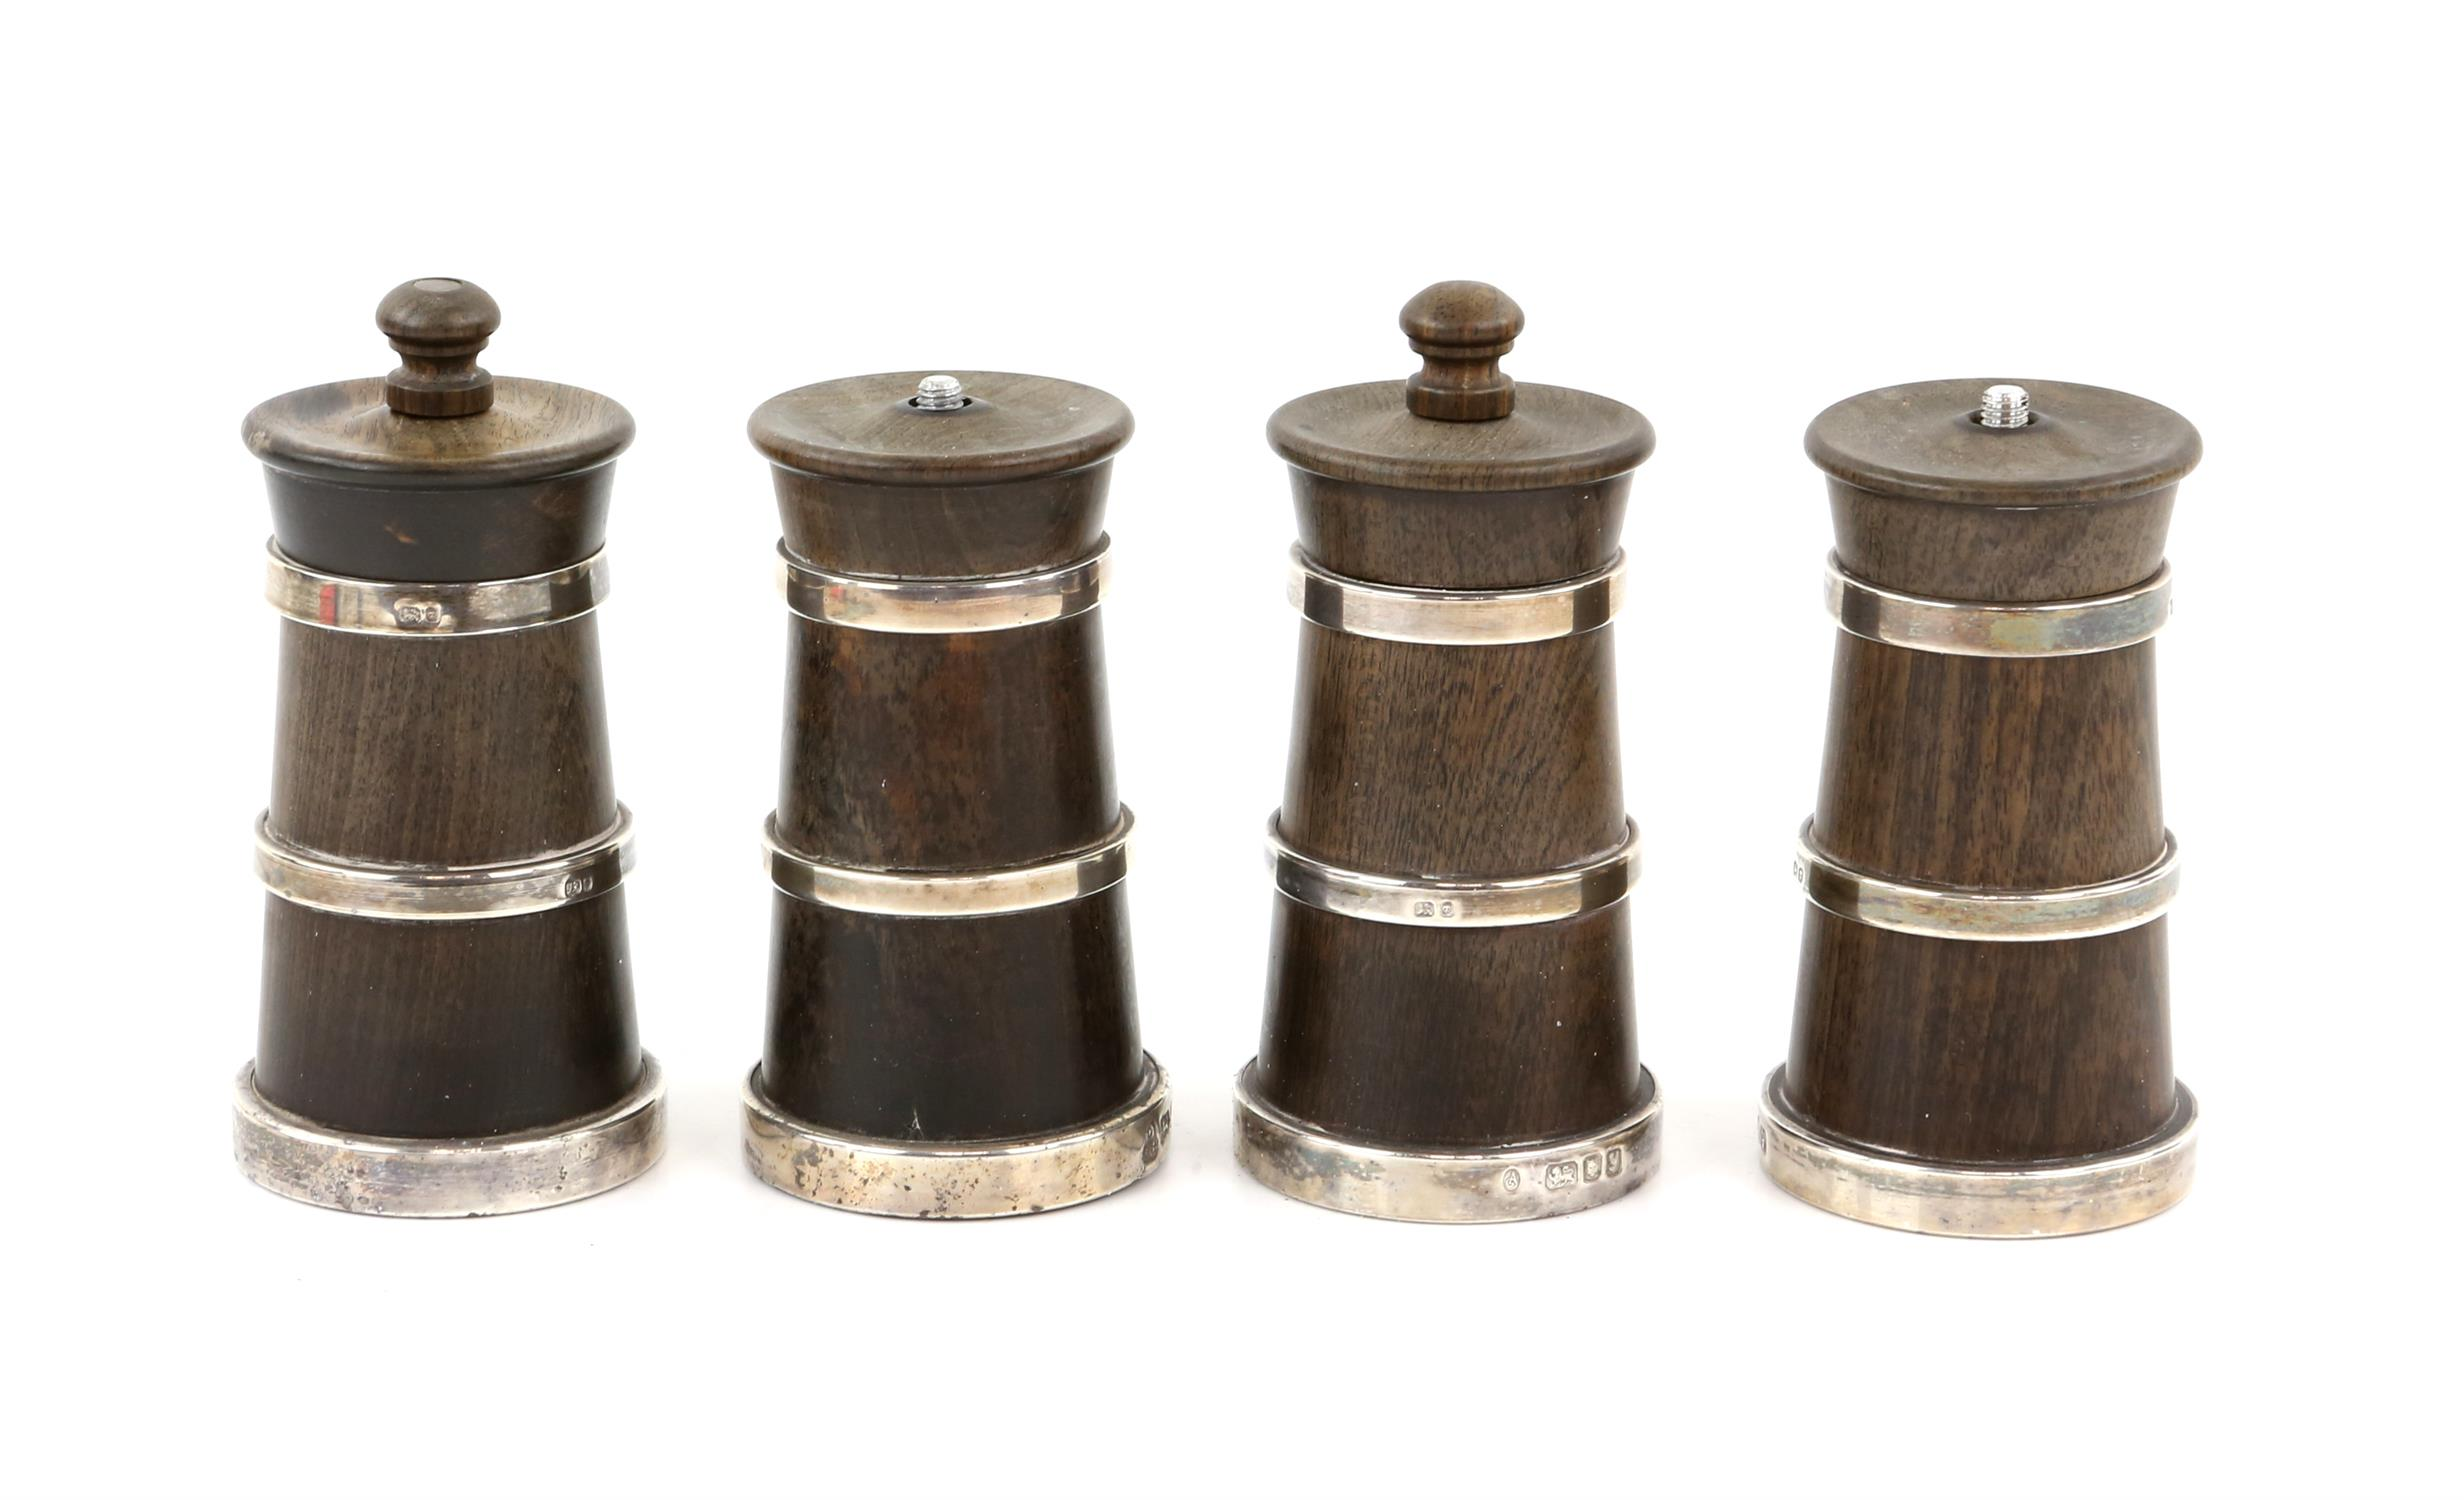 Four very similar walnut and silver mounted pepper grinders (two top screws although present